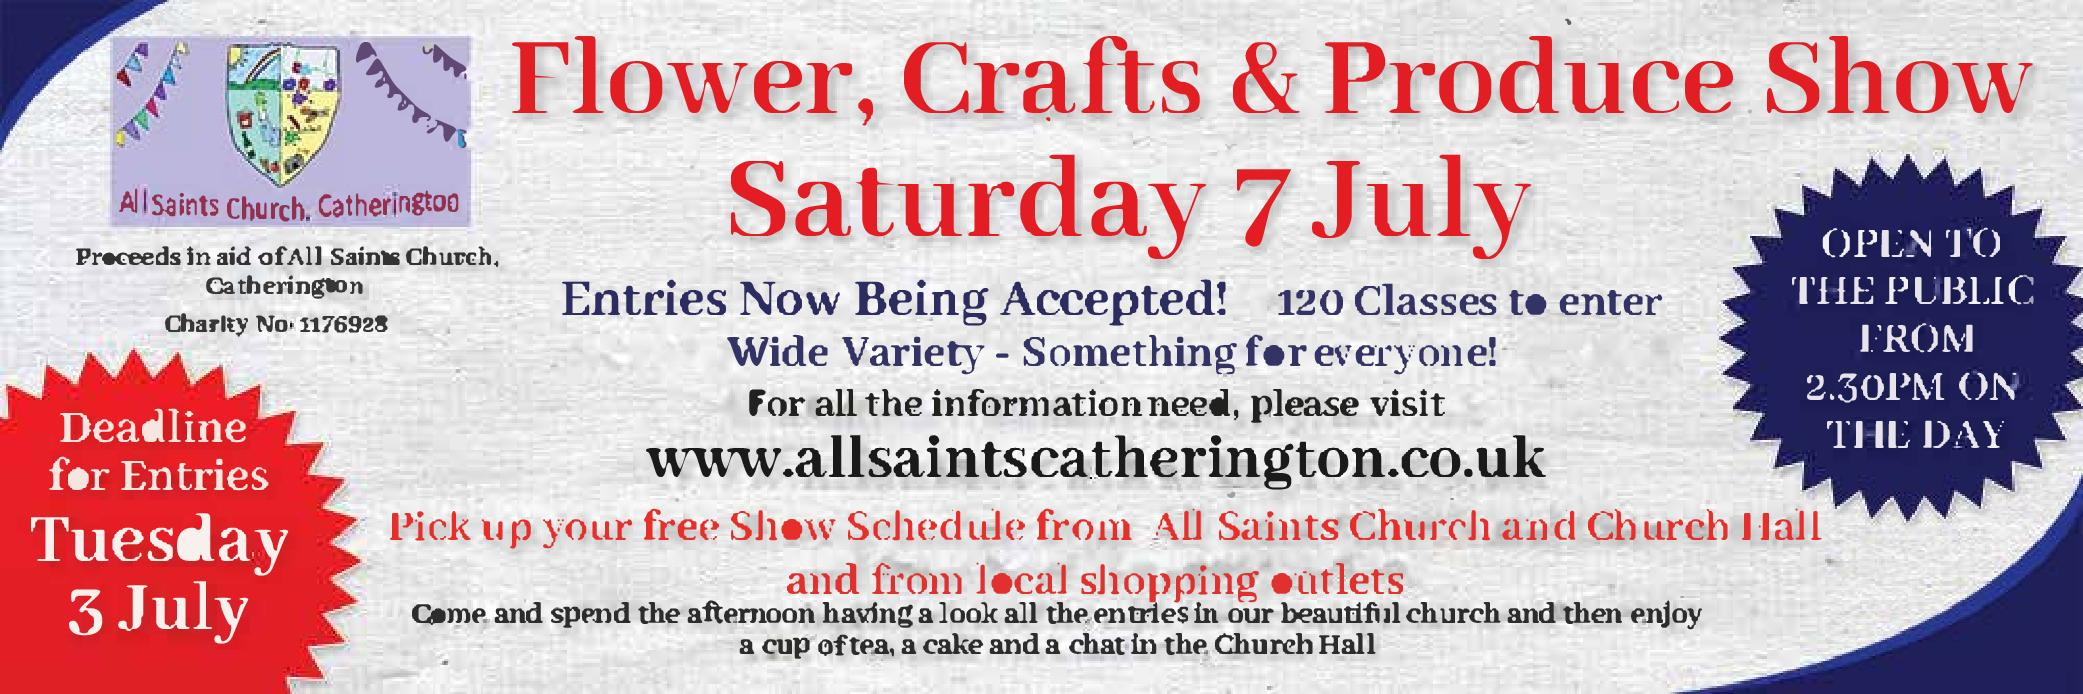 All Saints Church Flower, Crafts and Produce Show